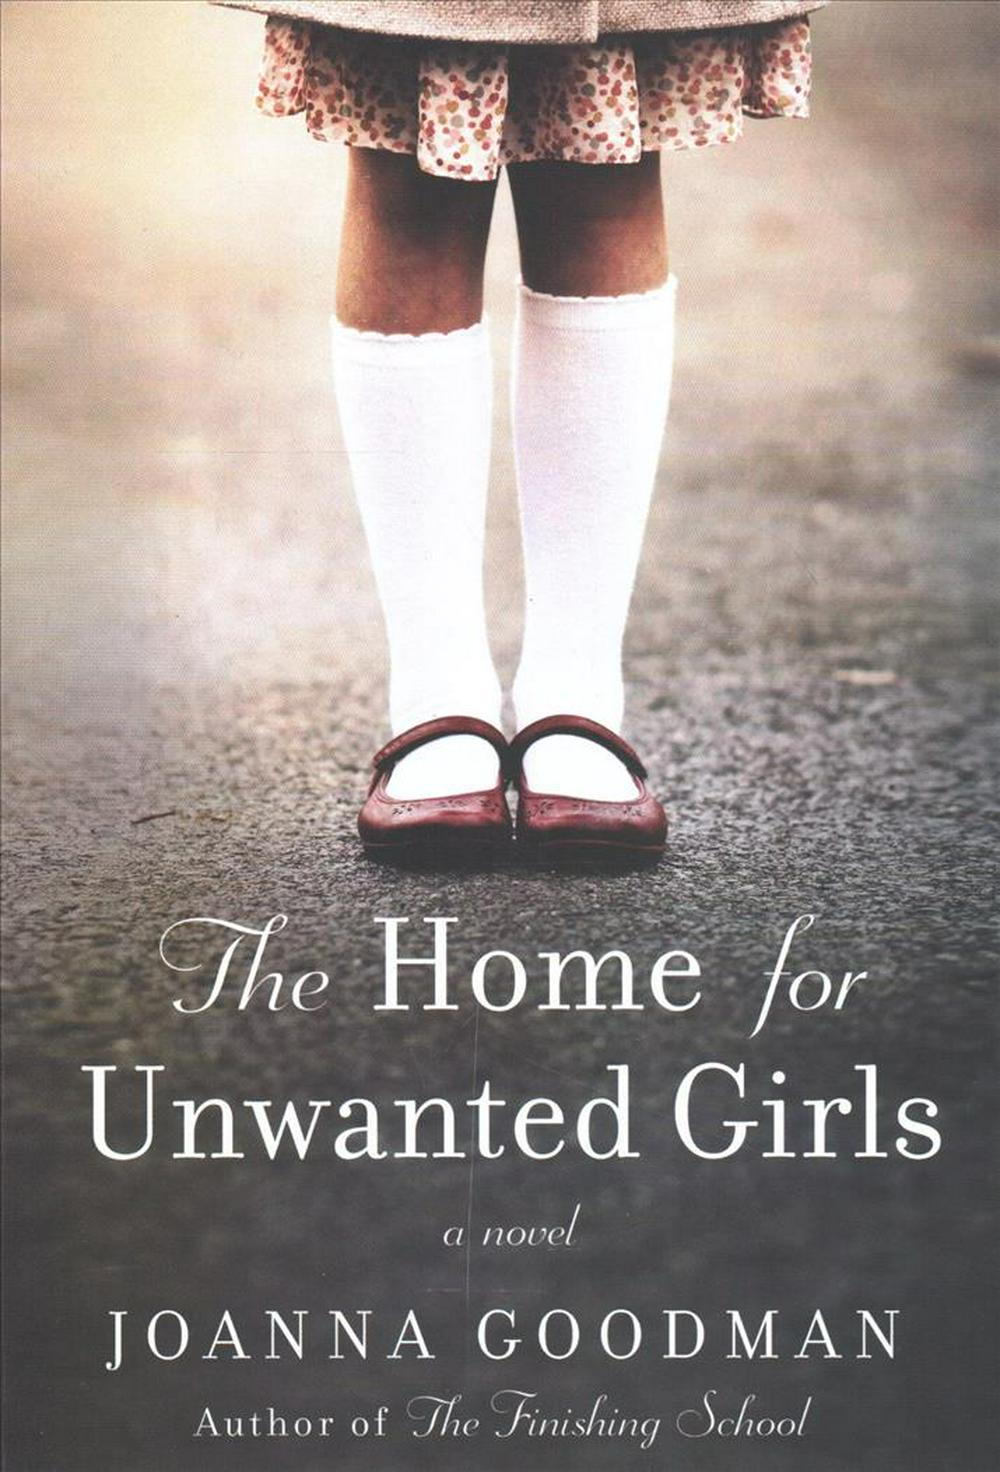 The Home for Unwanted Girls by Joanna Goodman, ISBN: 9780062684226